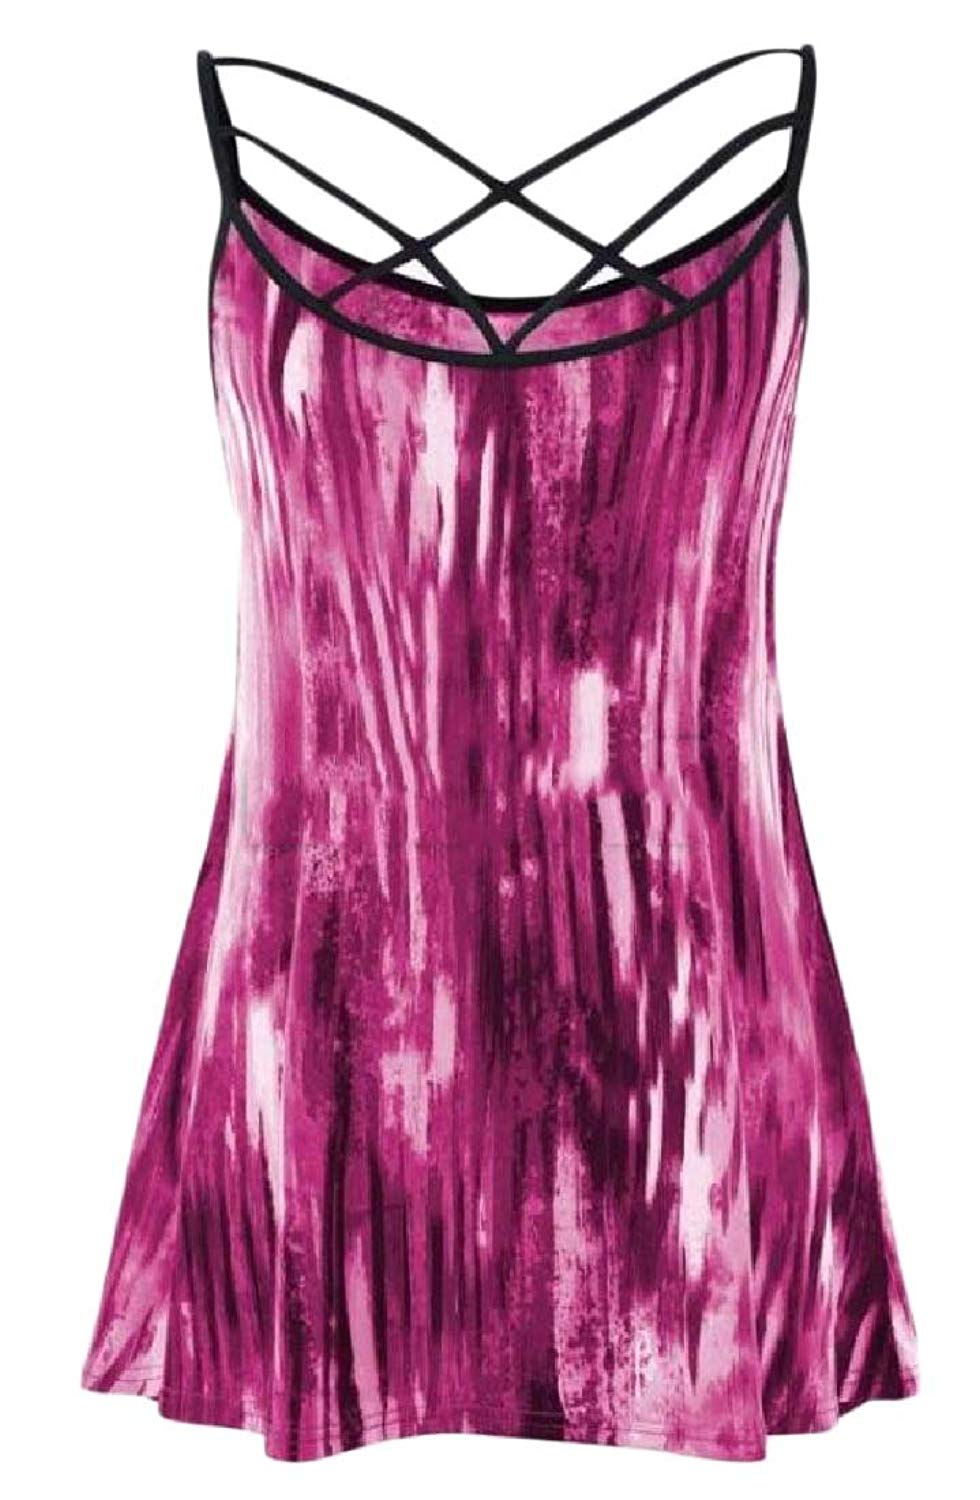 Zimaes-Women Hollow Out Tie-Dye Plus-Size Sexy Sleeveless Cami Blouse